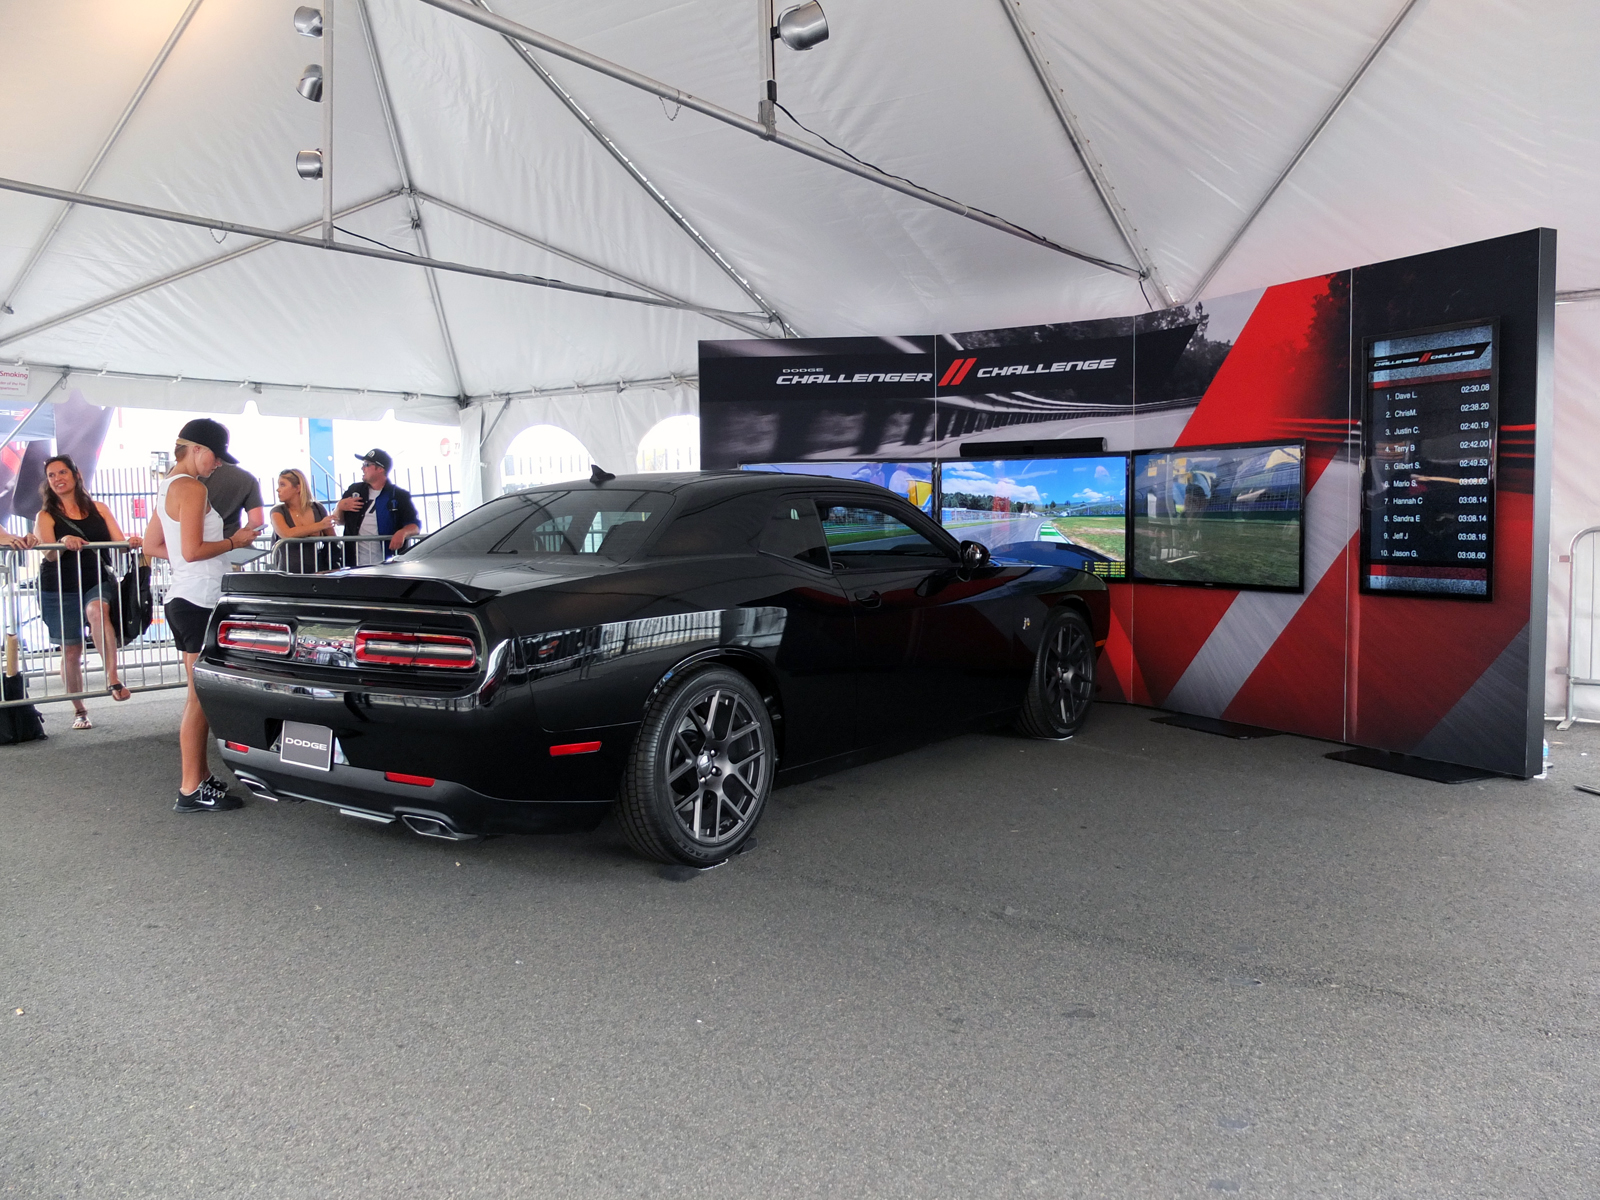 Dodge Challenger Full Motion Simulator